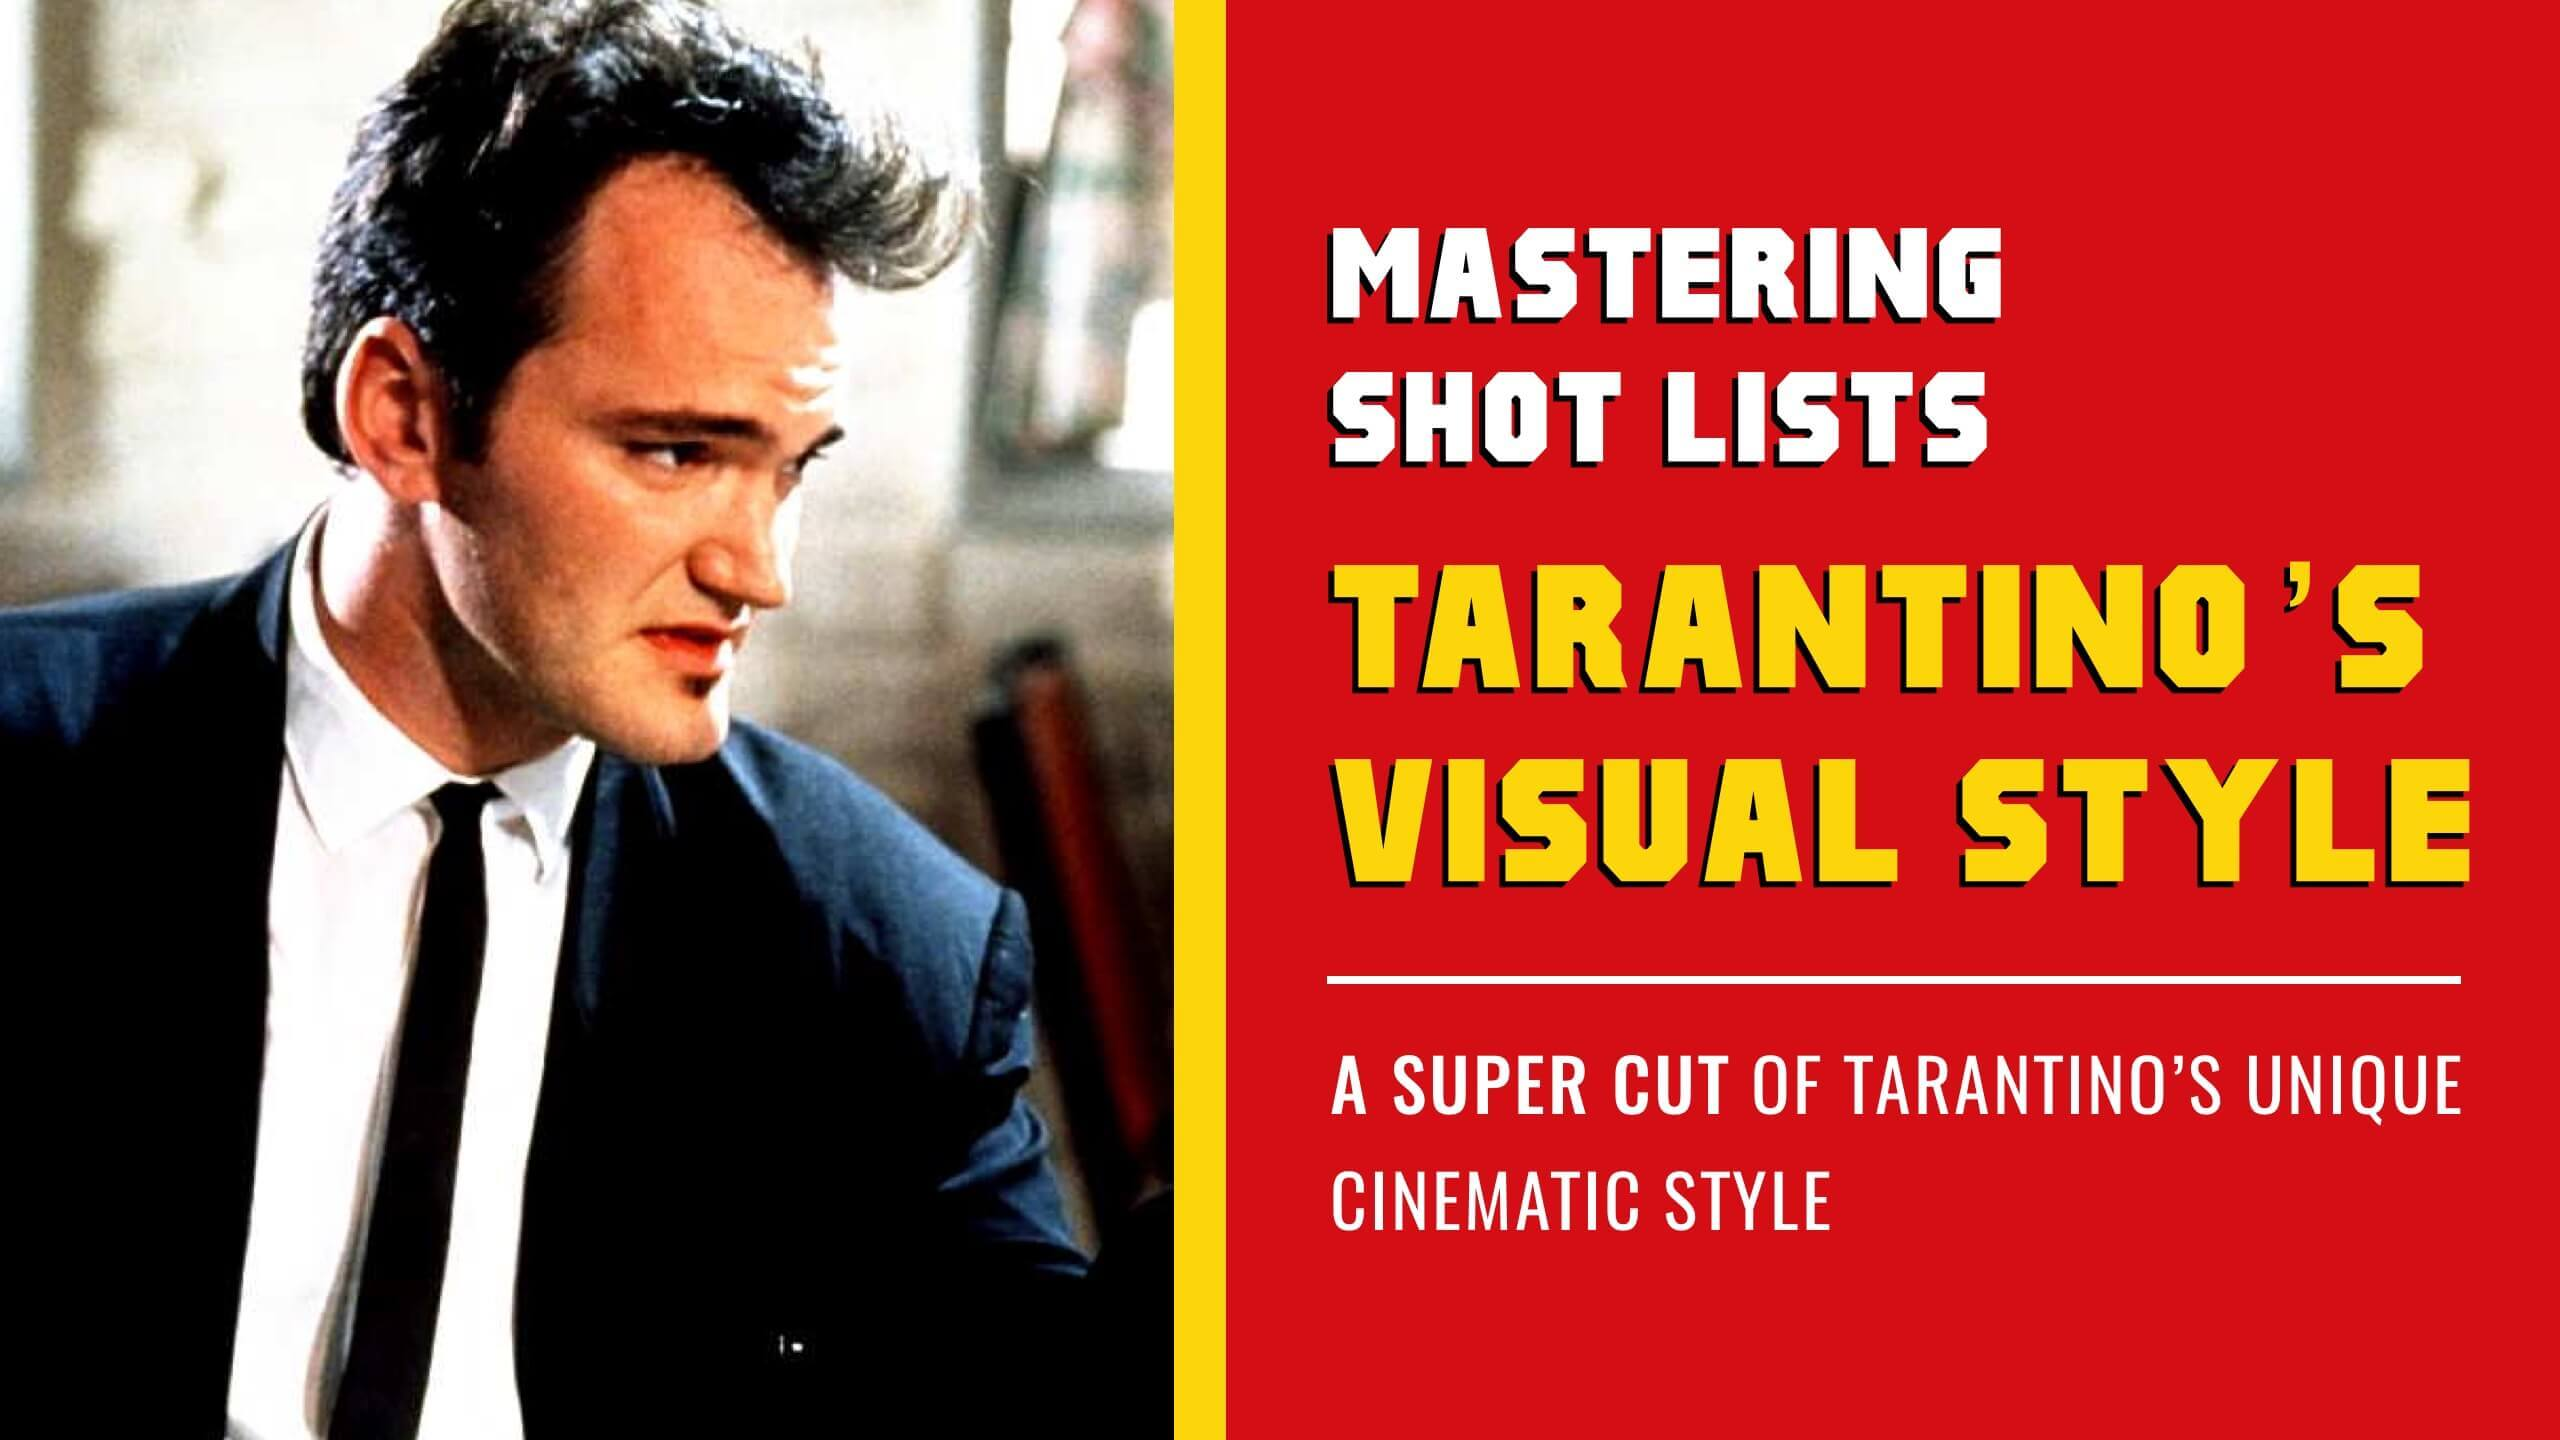 For decades Quentin Tarantino has excited and shocked audiences with his films. Here's how to create a shot list like Quentin Tarantino.